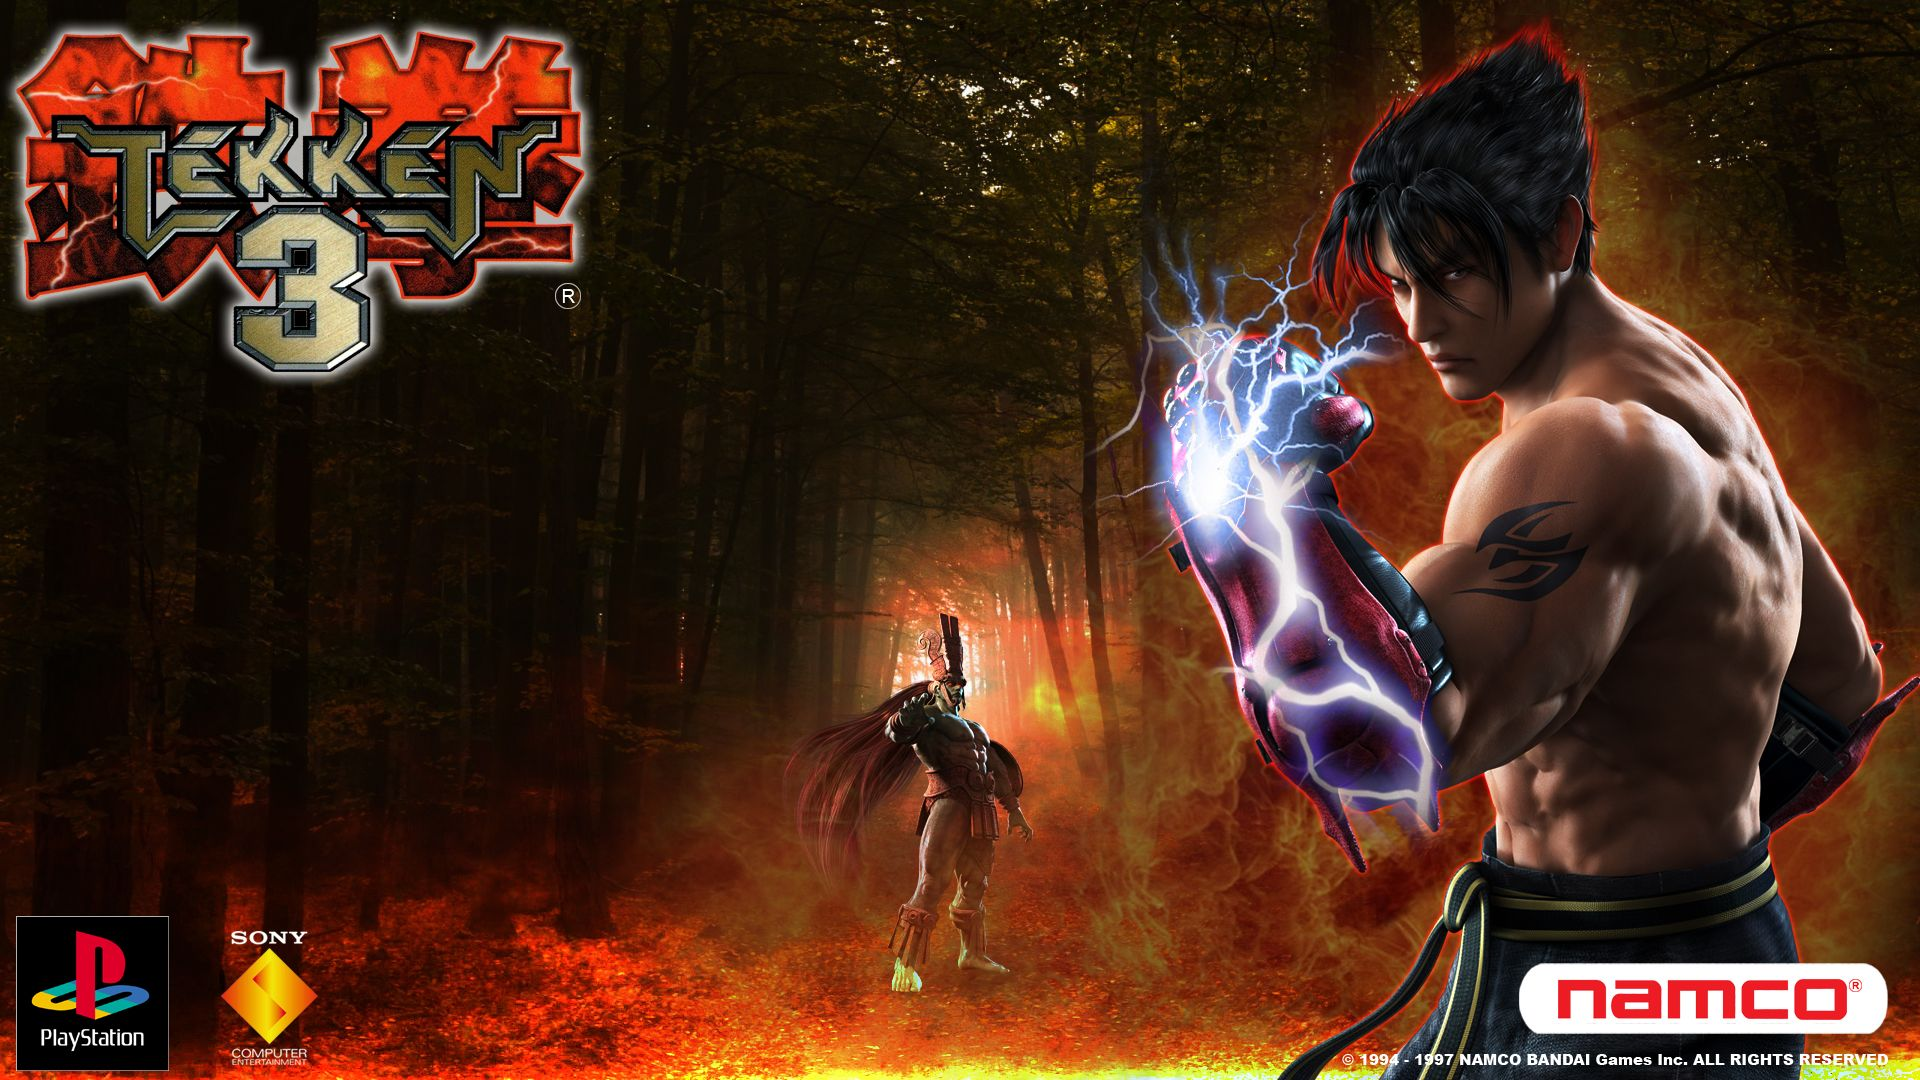 Play Tekken 3 Game On Android With Easy Step Gai Info Game Download Free Download Games Free Pc Games Download